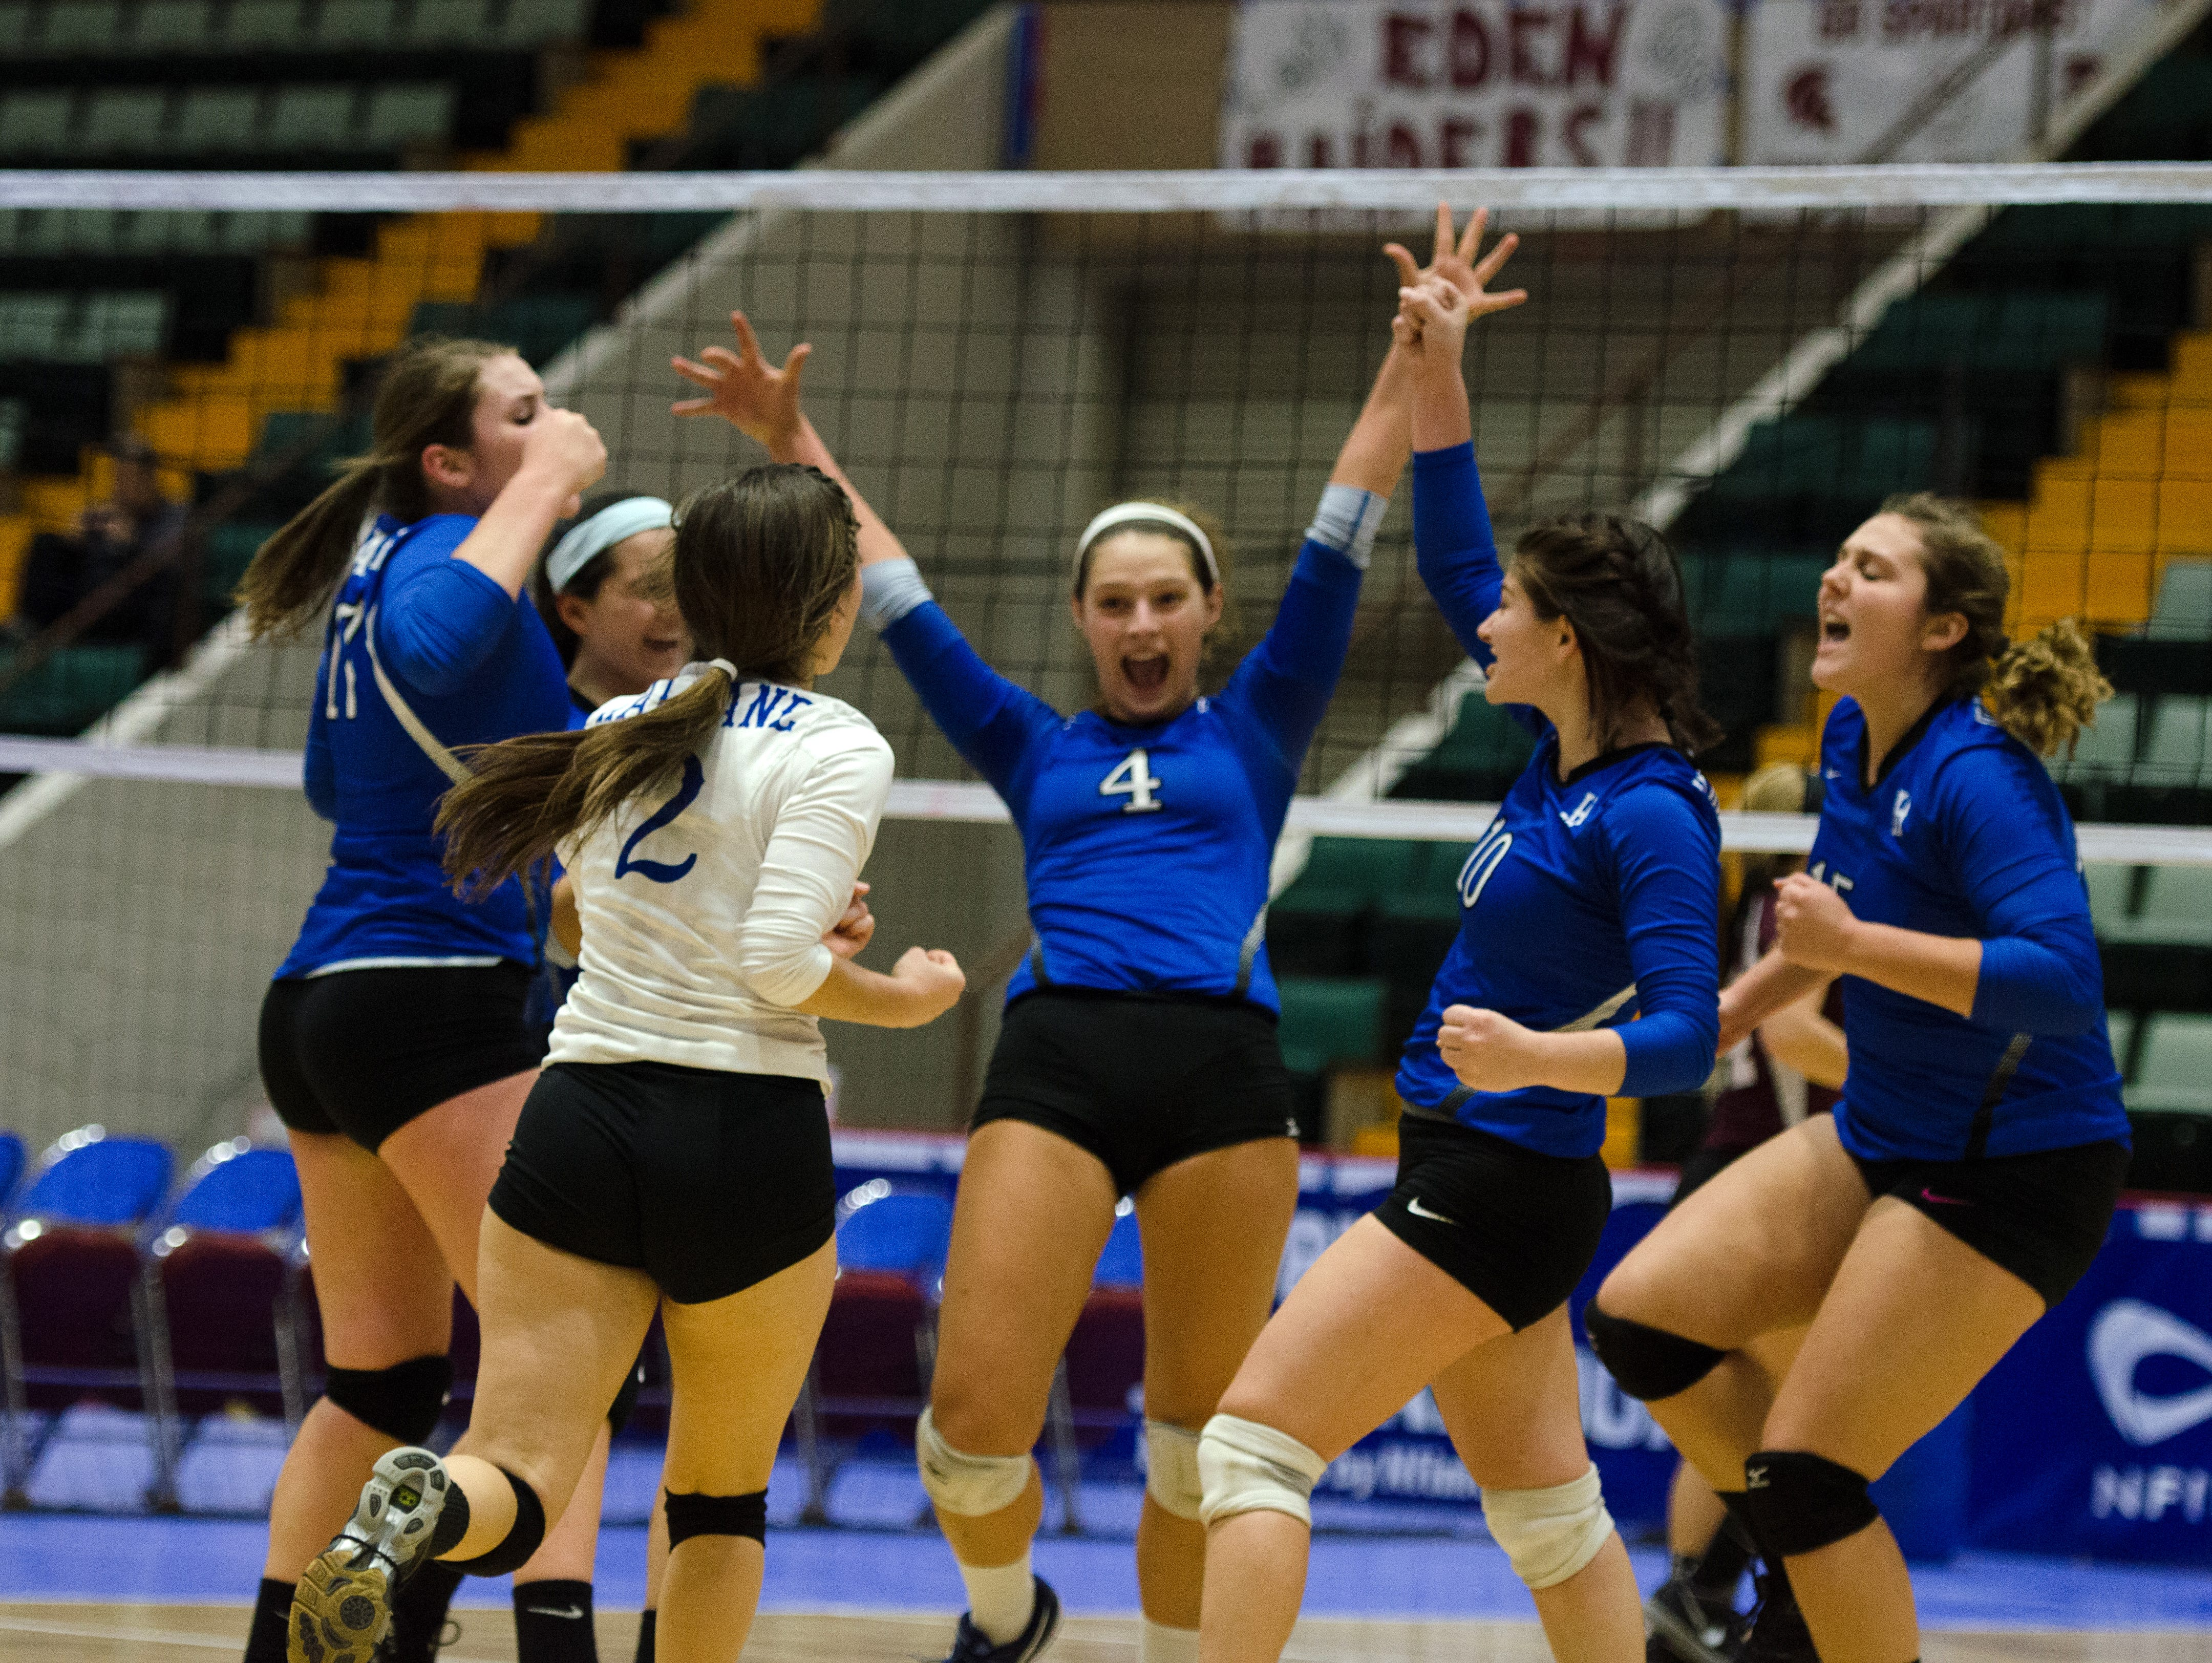 Haldane players come togther to celebtate after a scoring play during the Class D State Volleyball Finals Sunday November 22, 2015 at Glens Falls Civic Center.